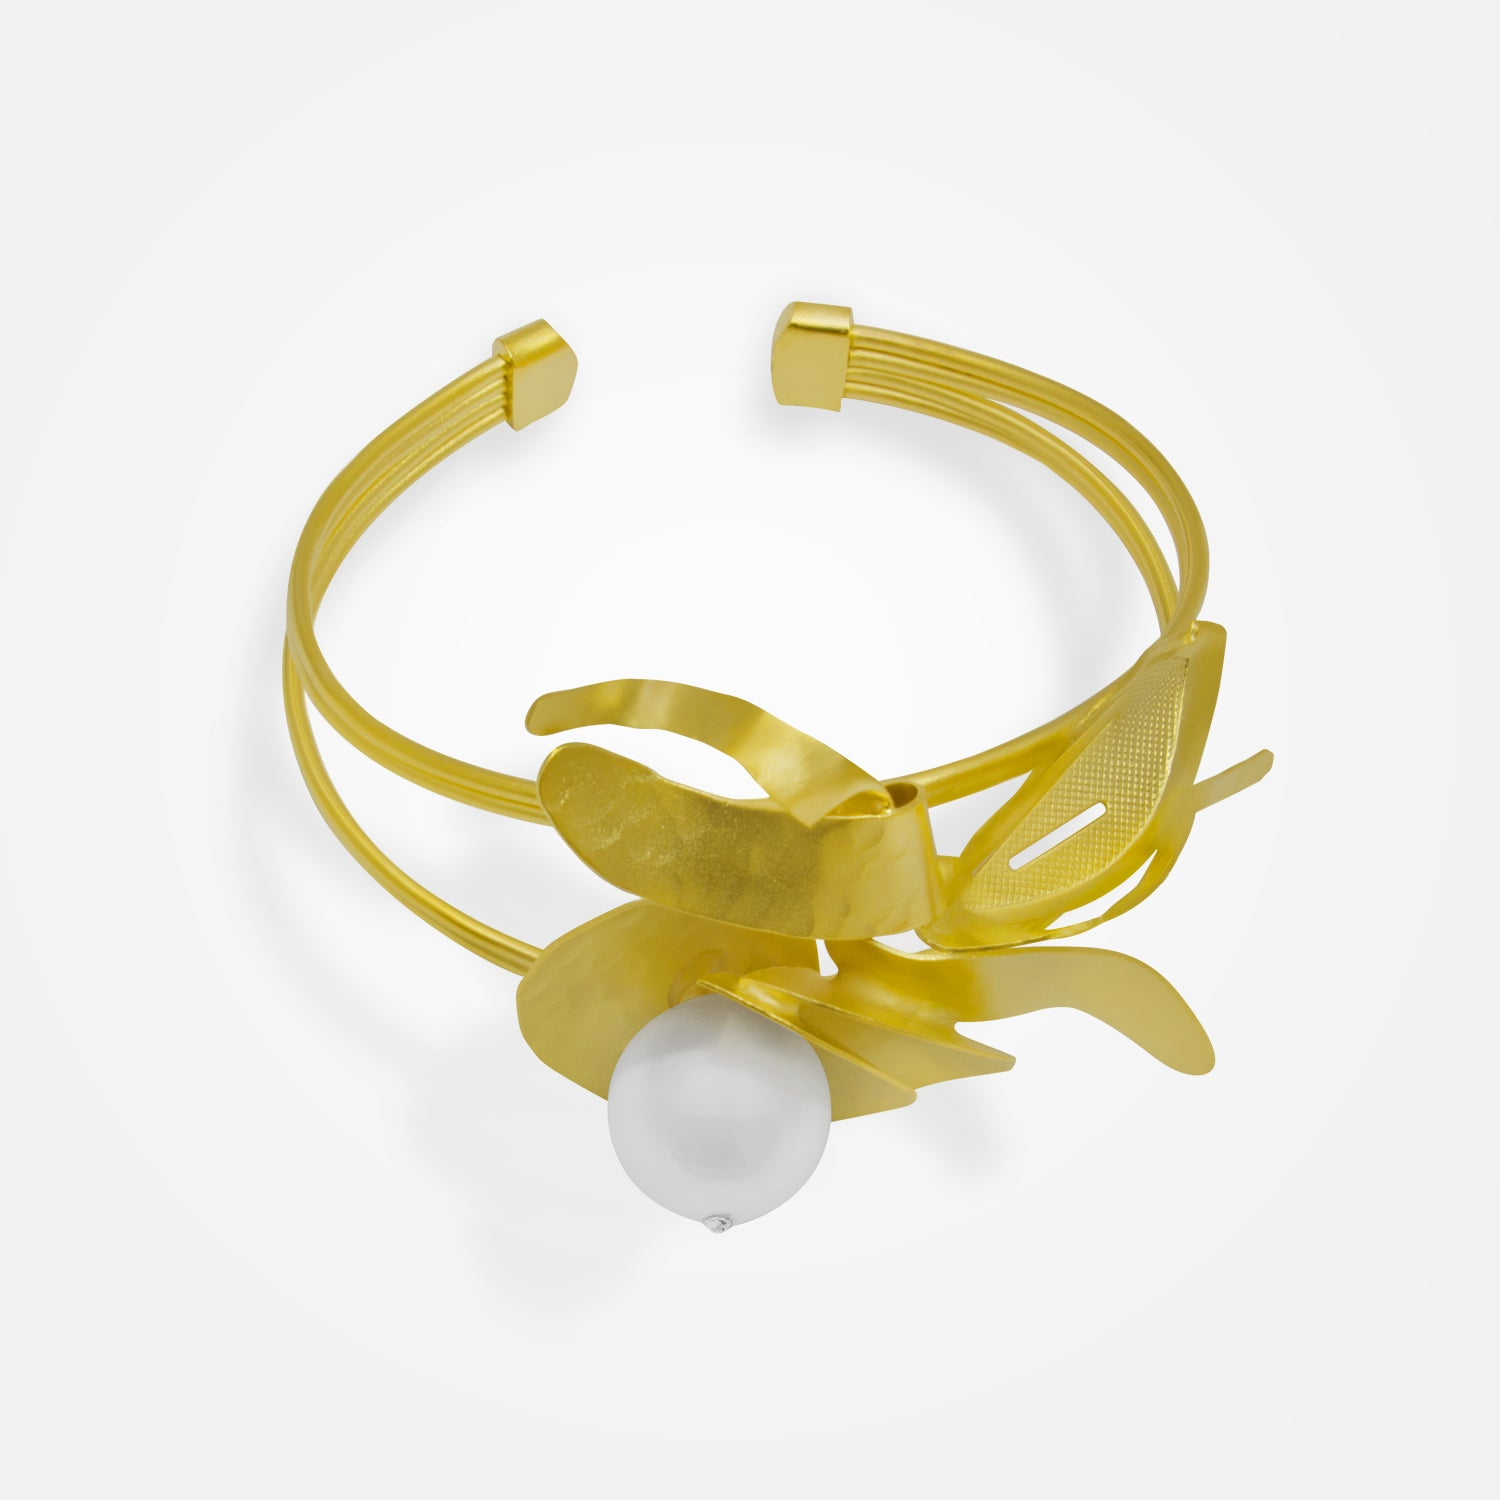 Handcrafted Golden Flower & Pearl Bracelet by FO.BE